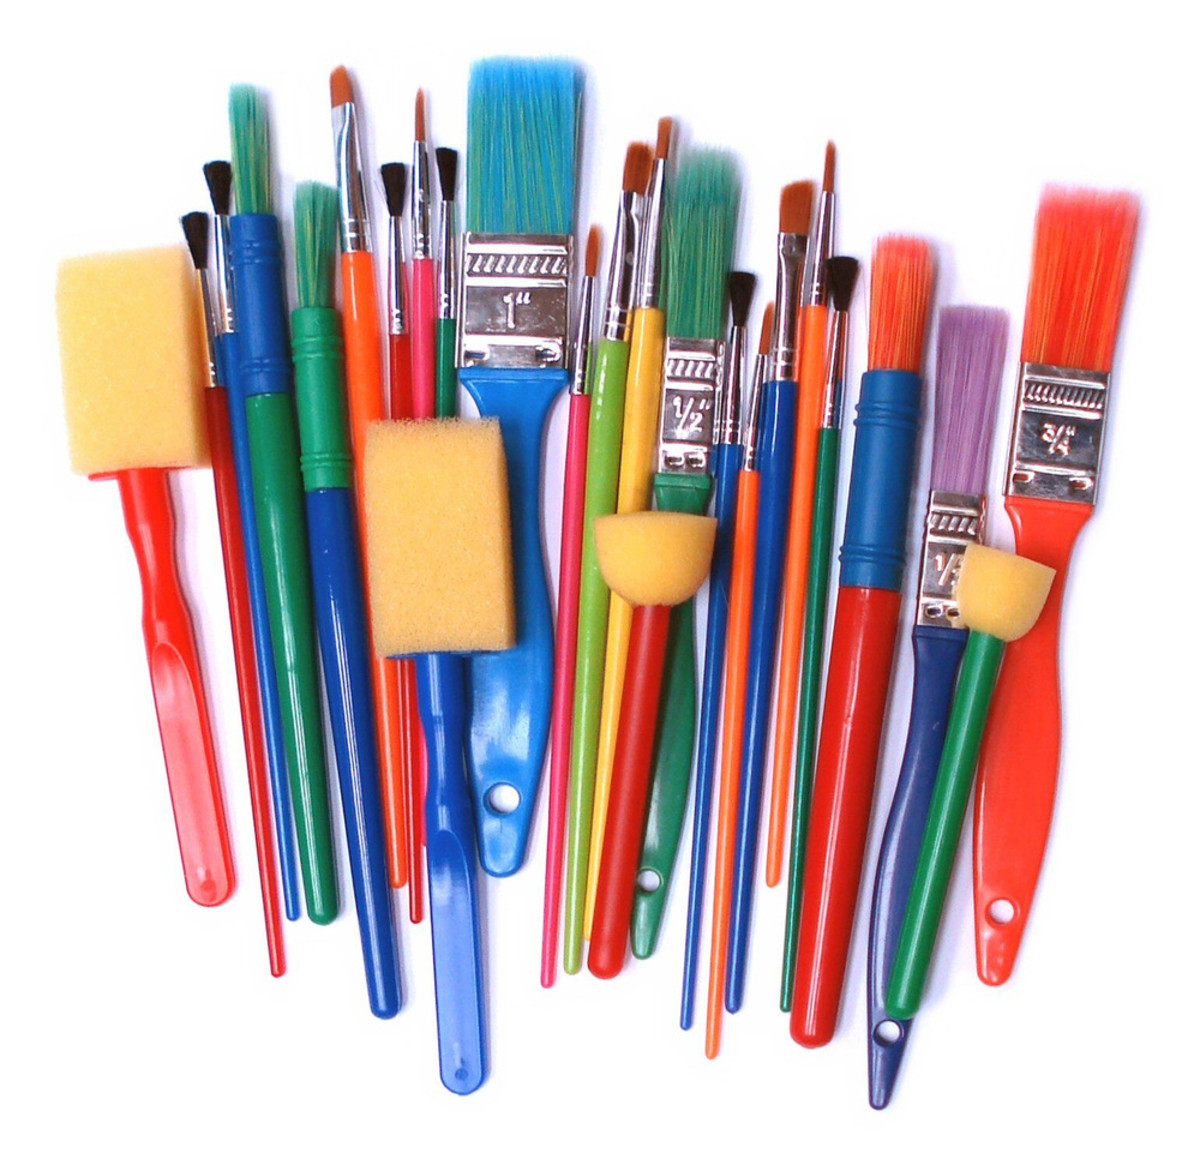 There are a variety of paint brushes available for paper crafters